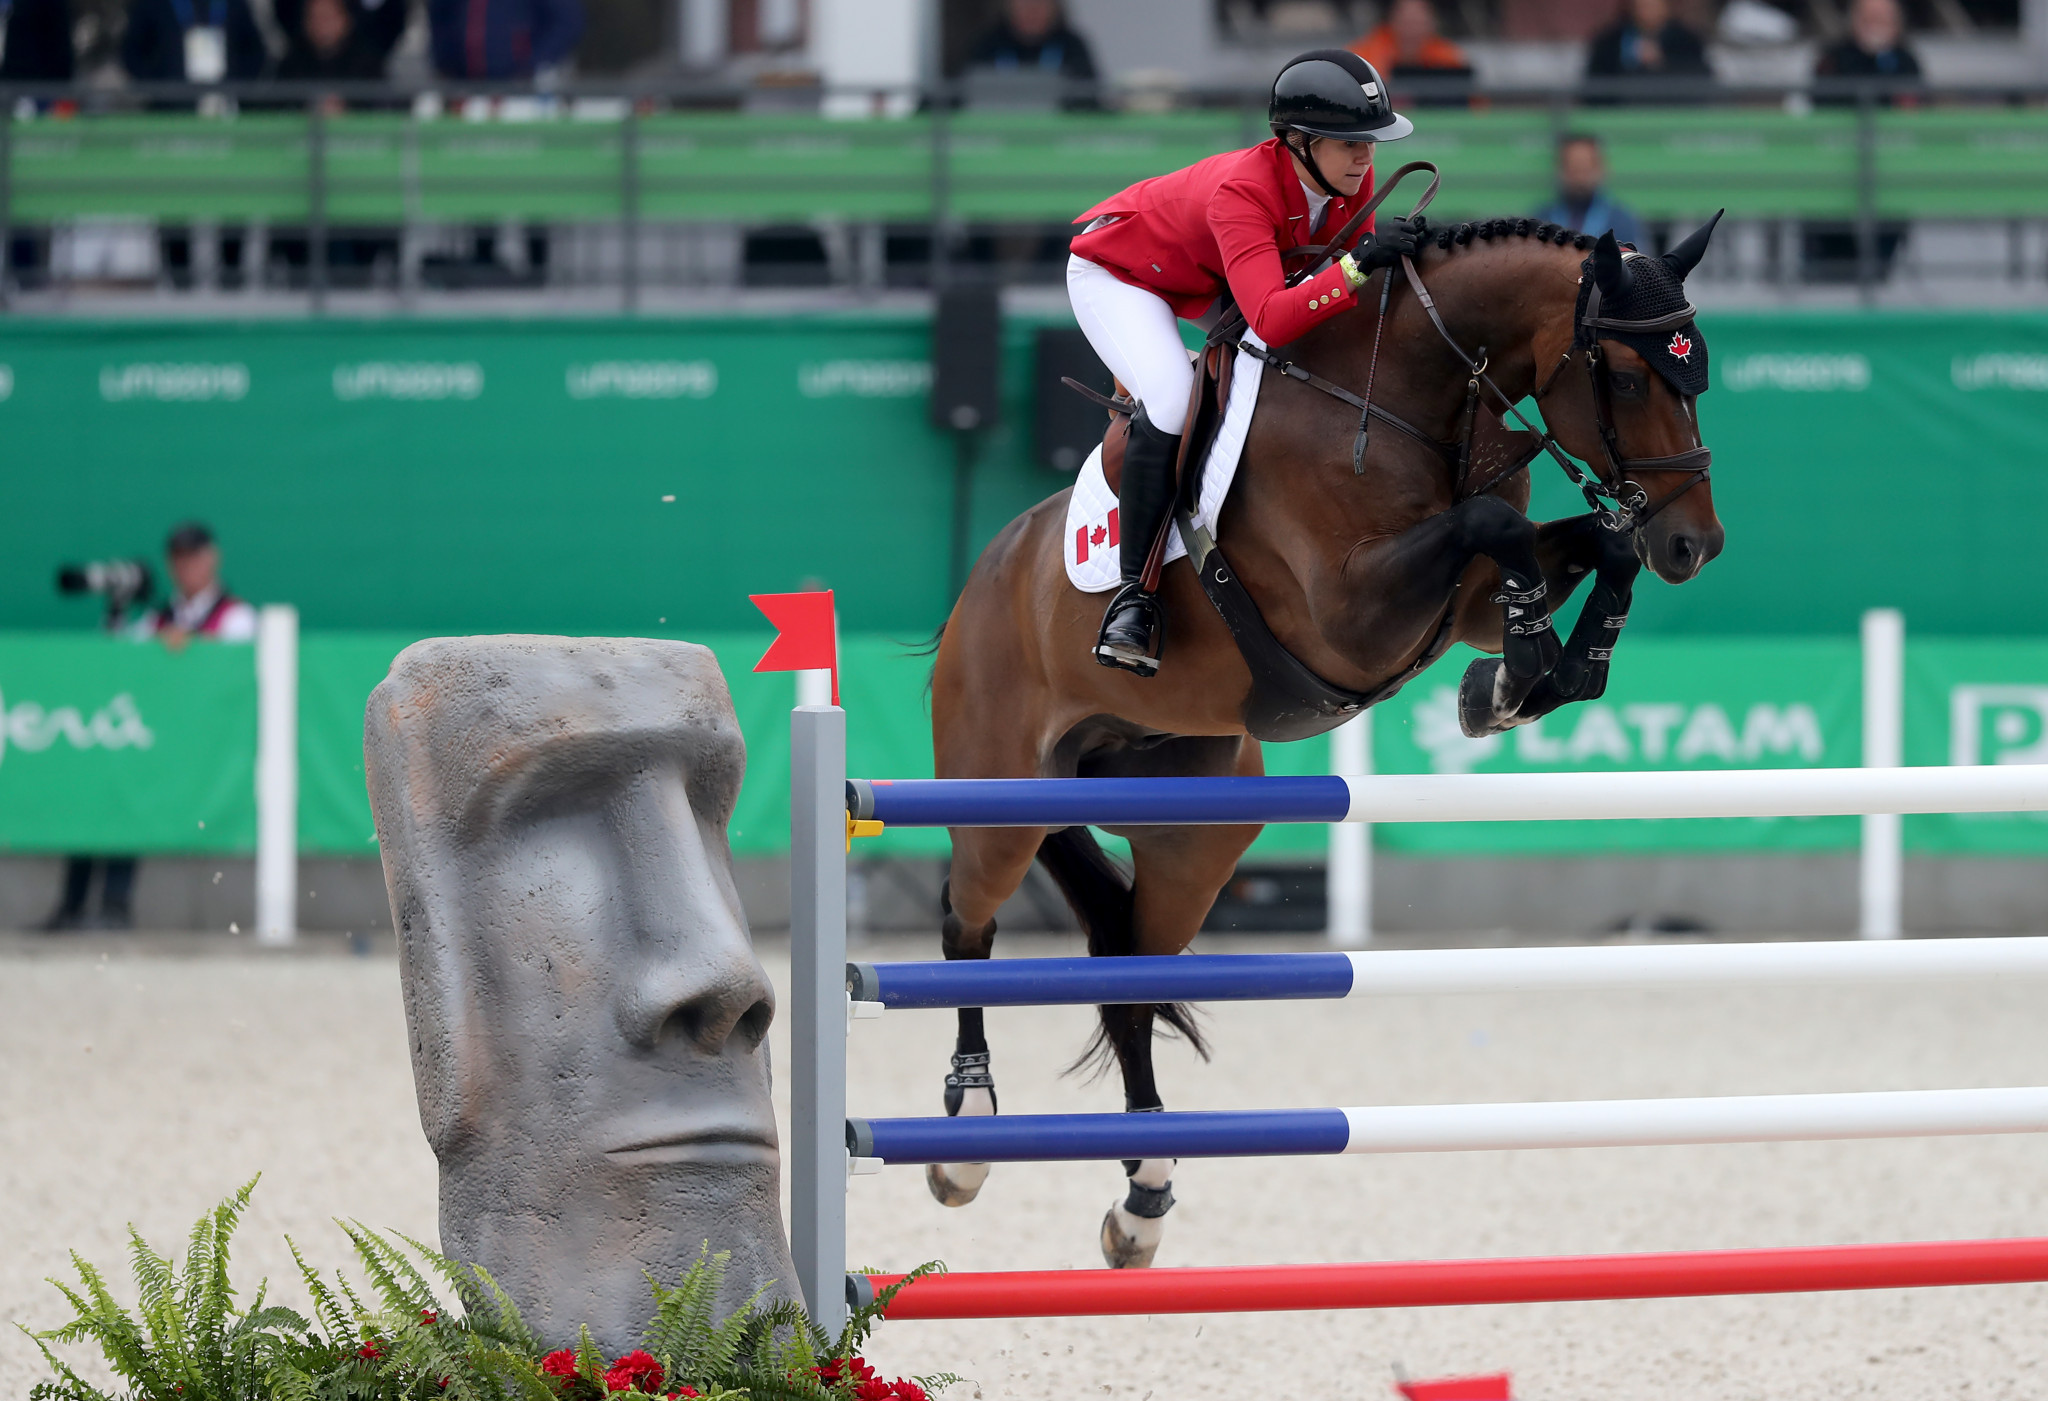 Canada showjumping spot at Tokyo 2020 in doubt after positive drug test